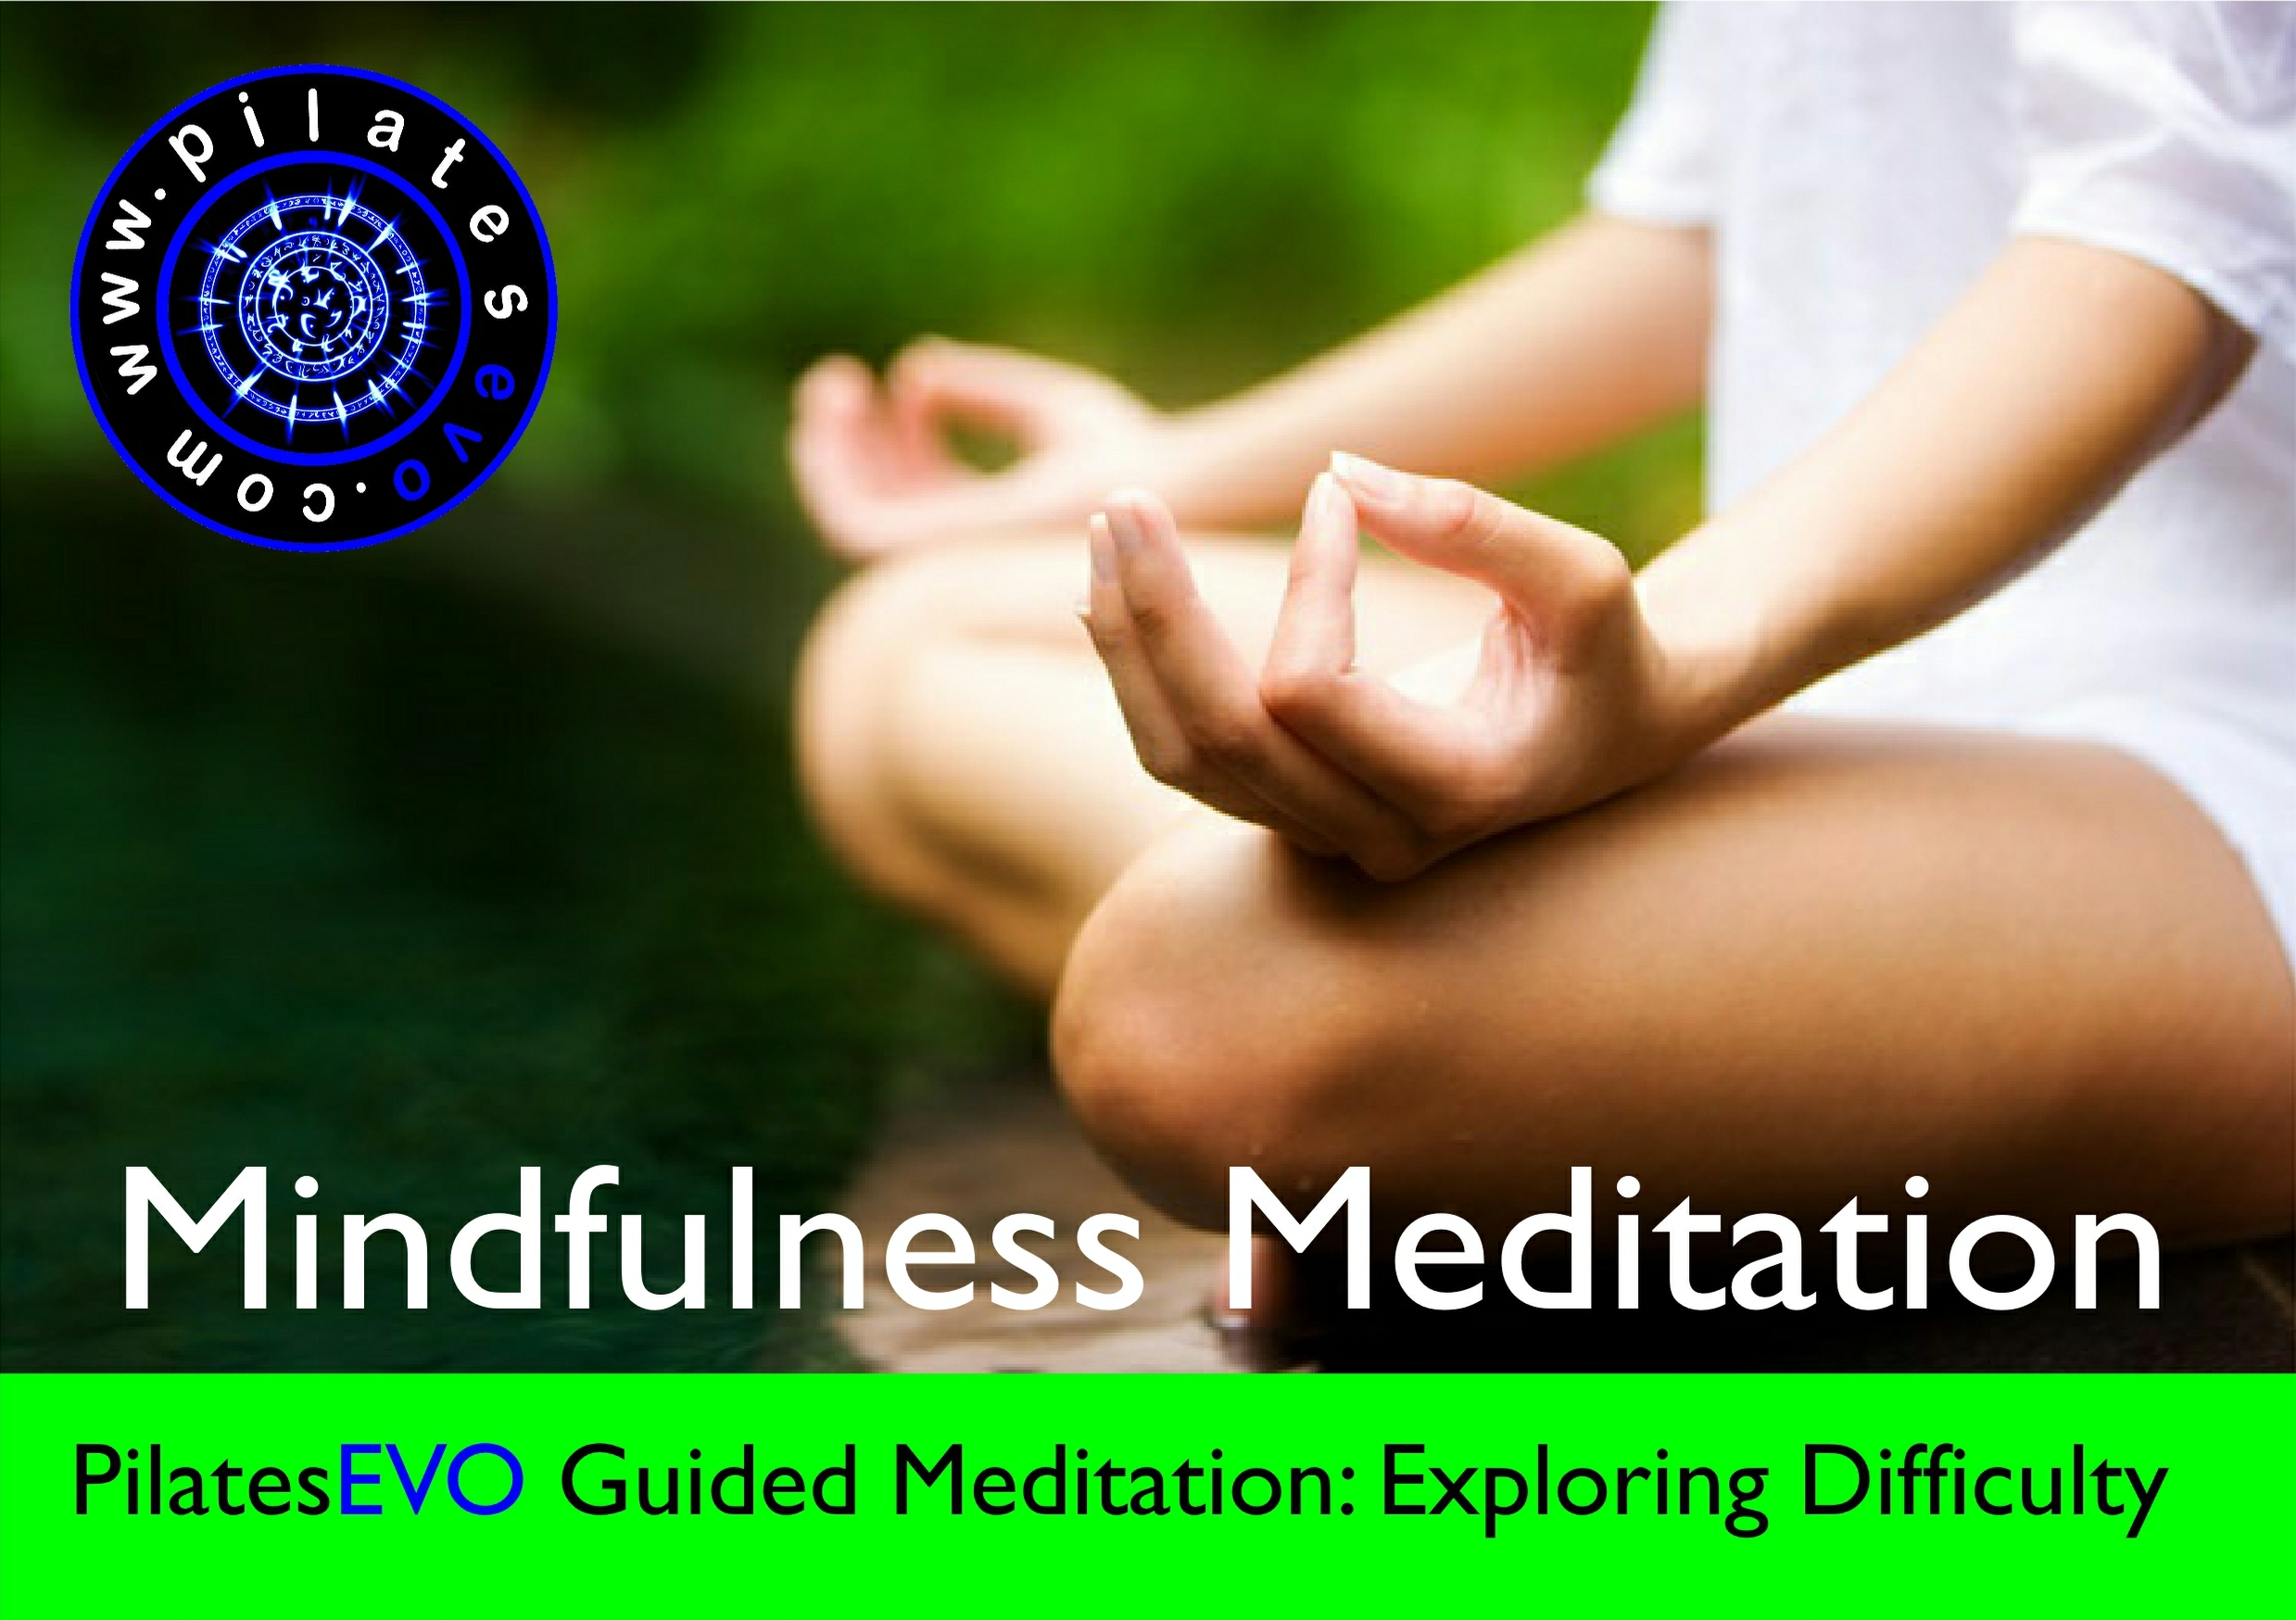 PilatesEVO Guided Meditation Difficulty